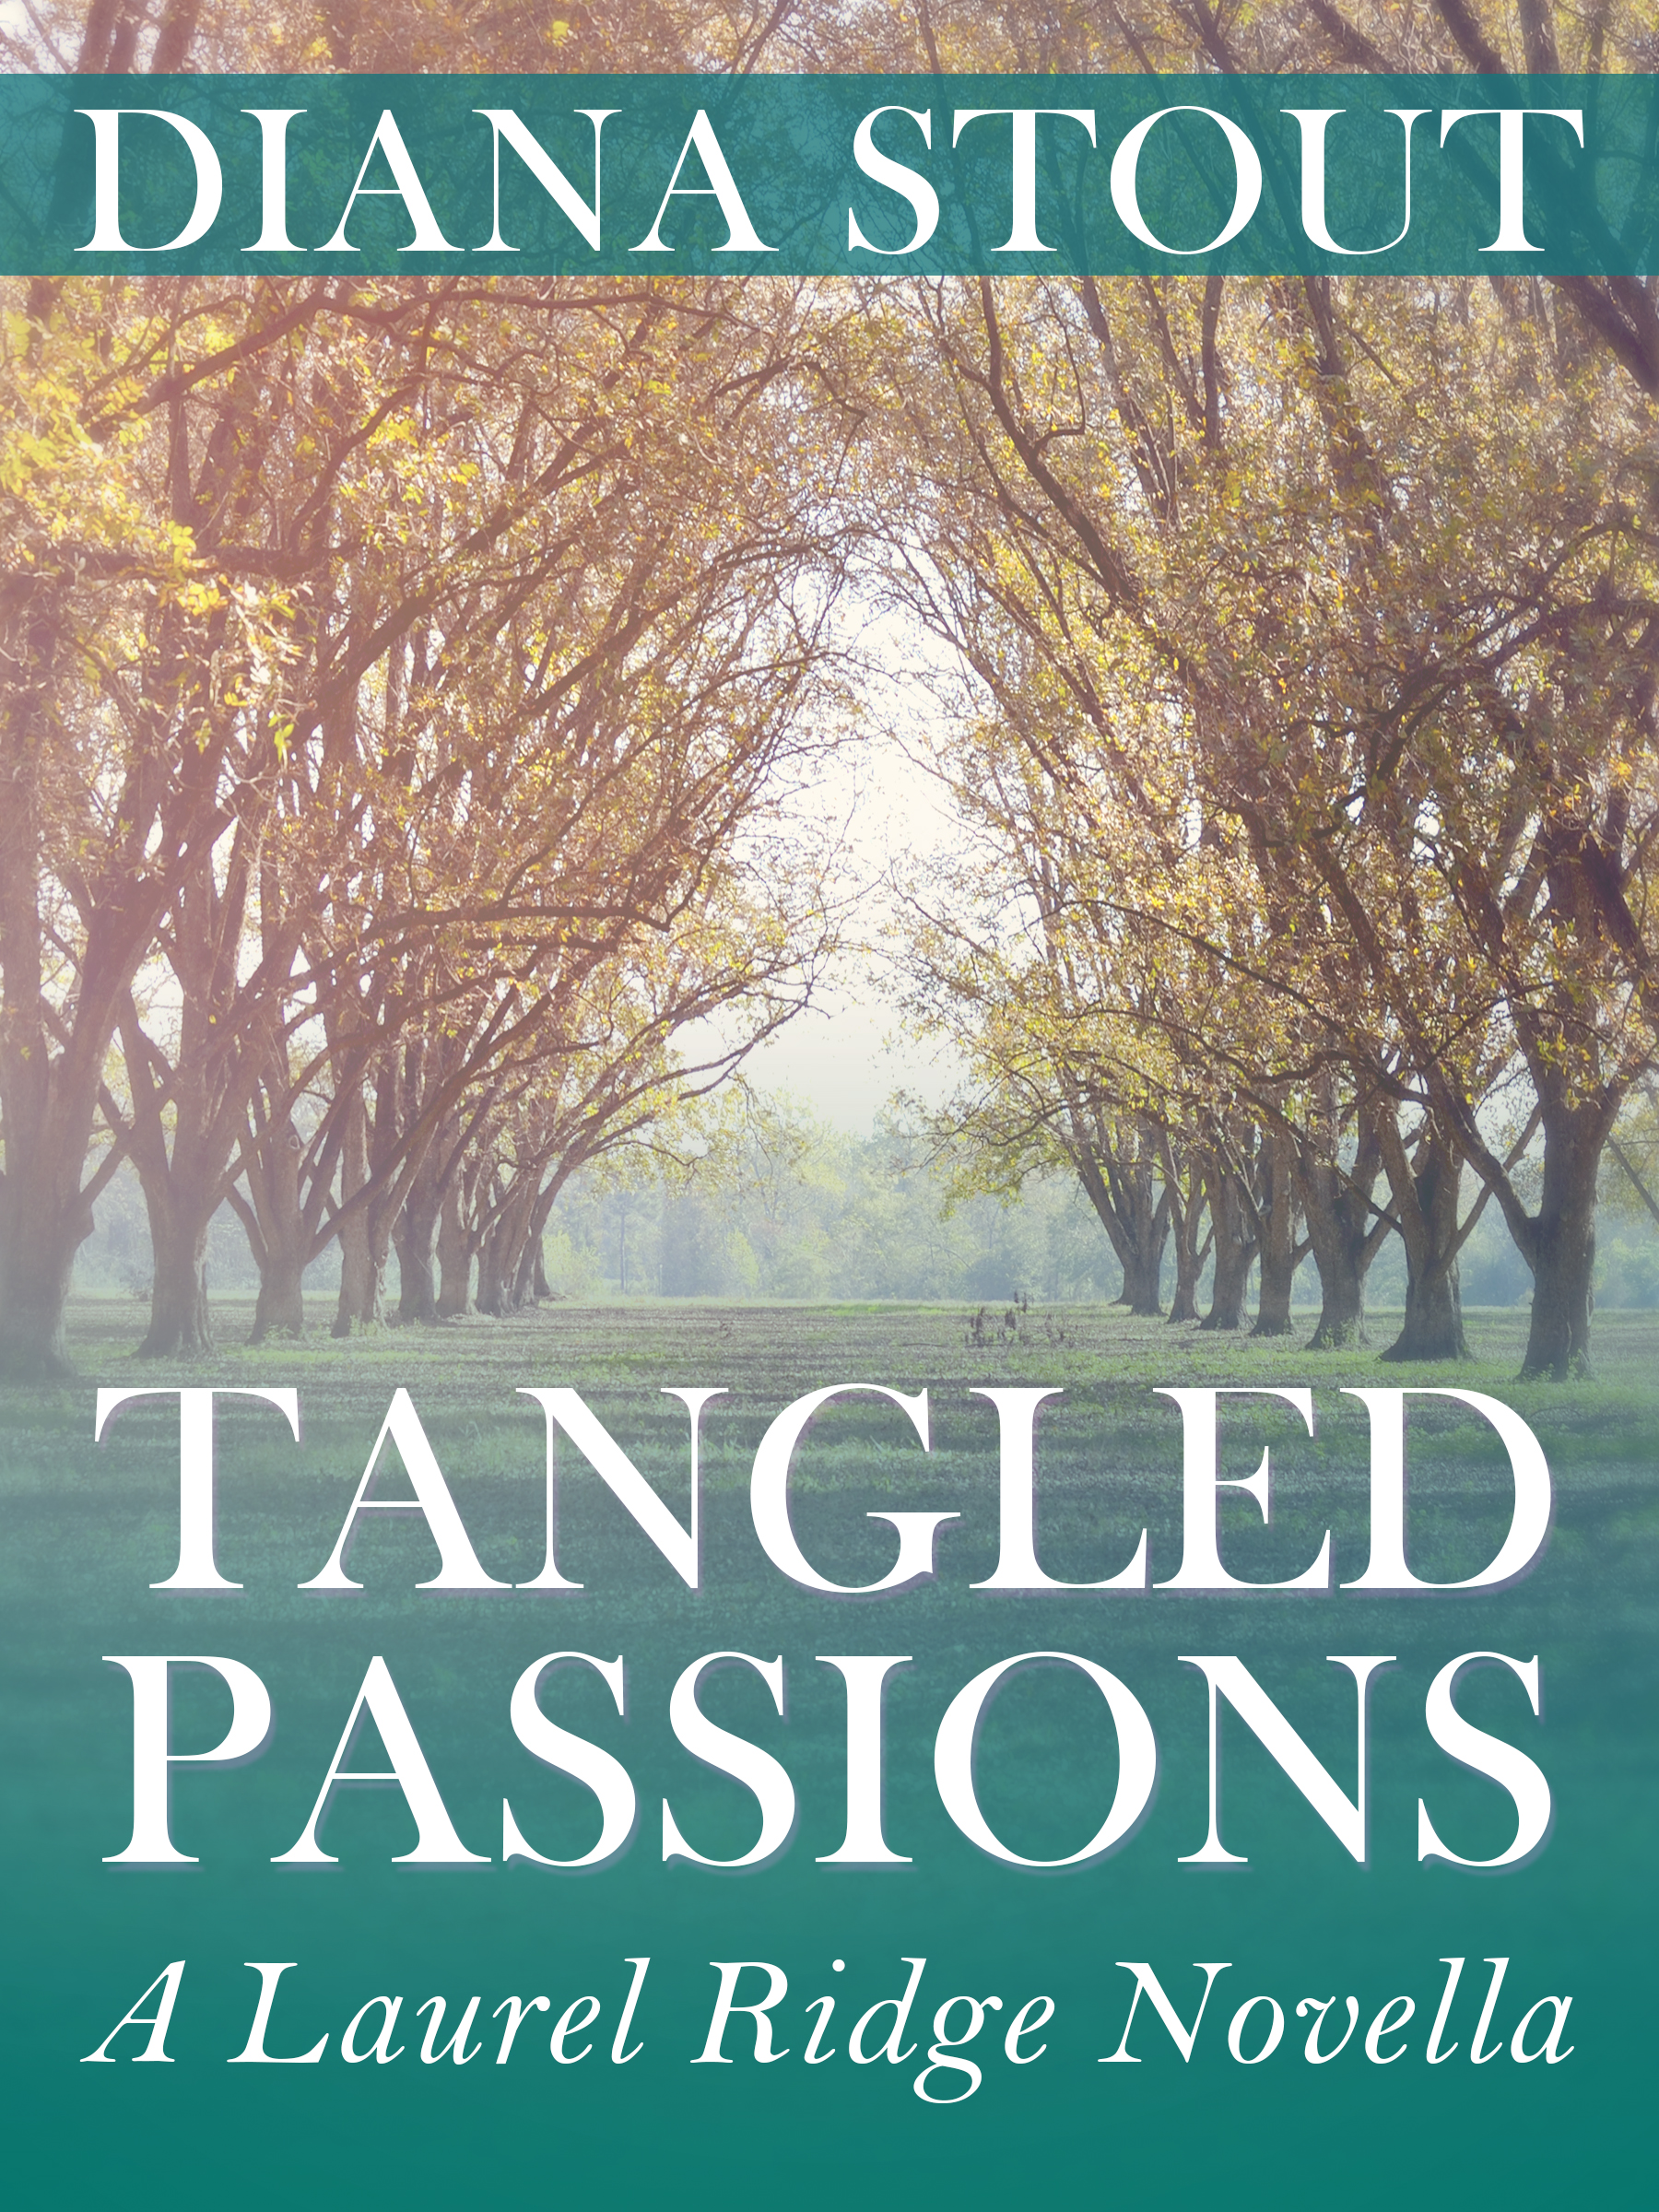 #Final #5 Tangled Passions 1